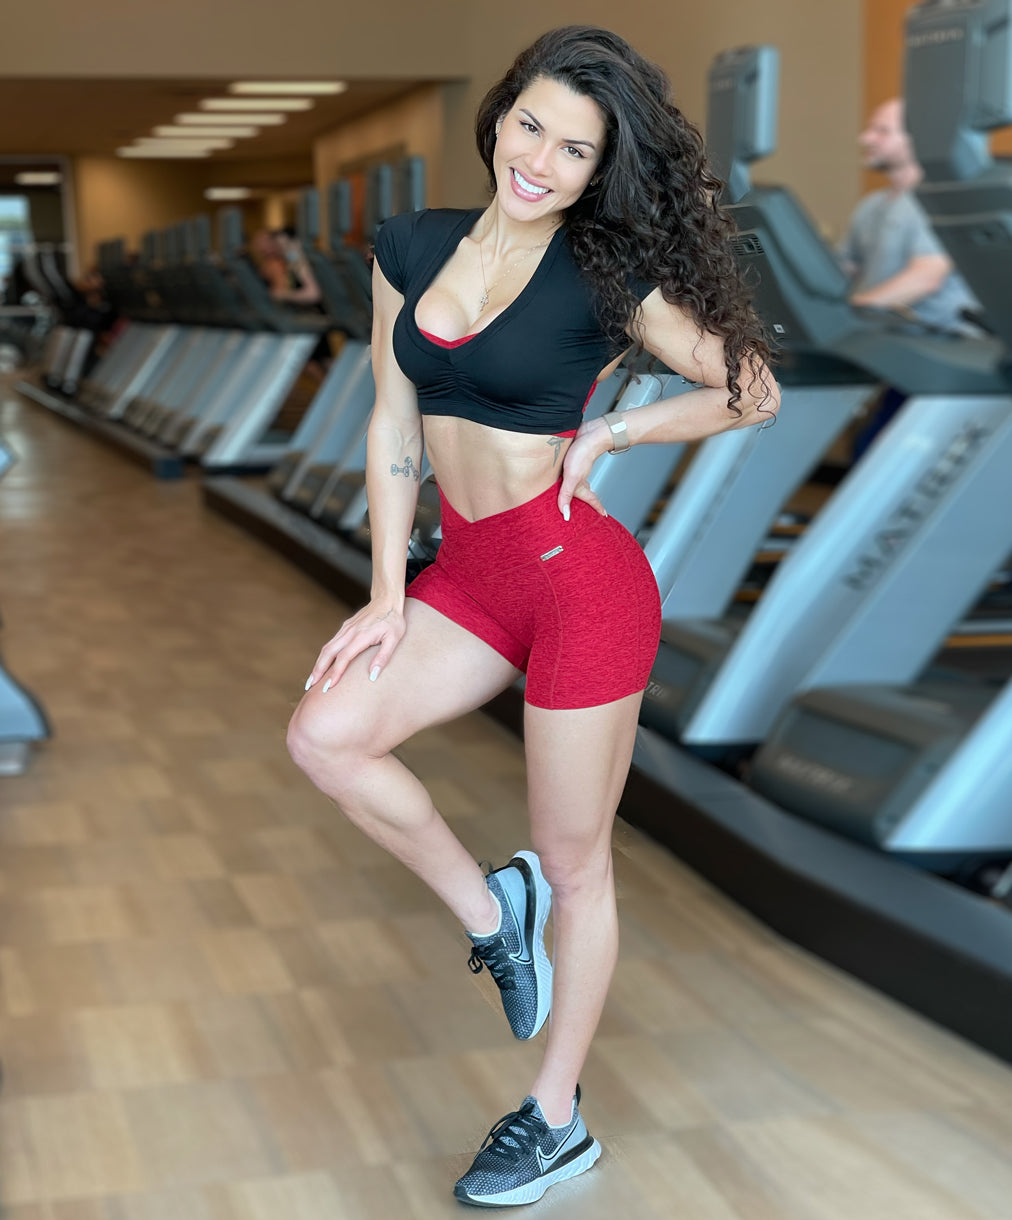 model in red shorts at gym